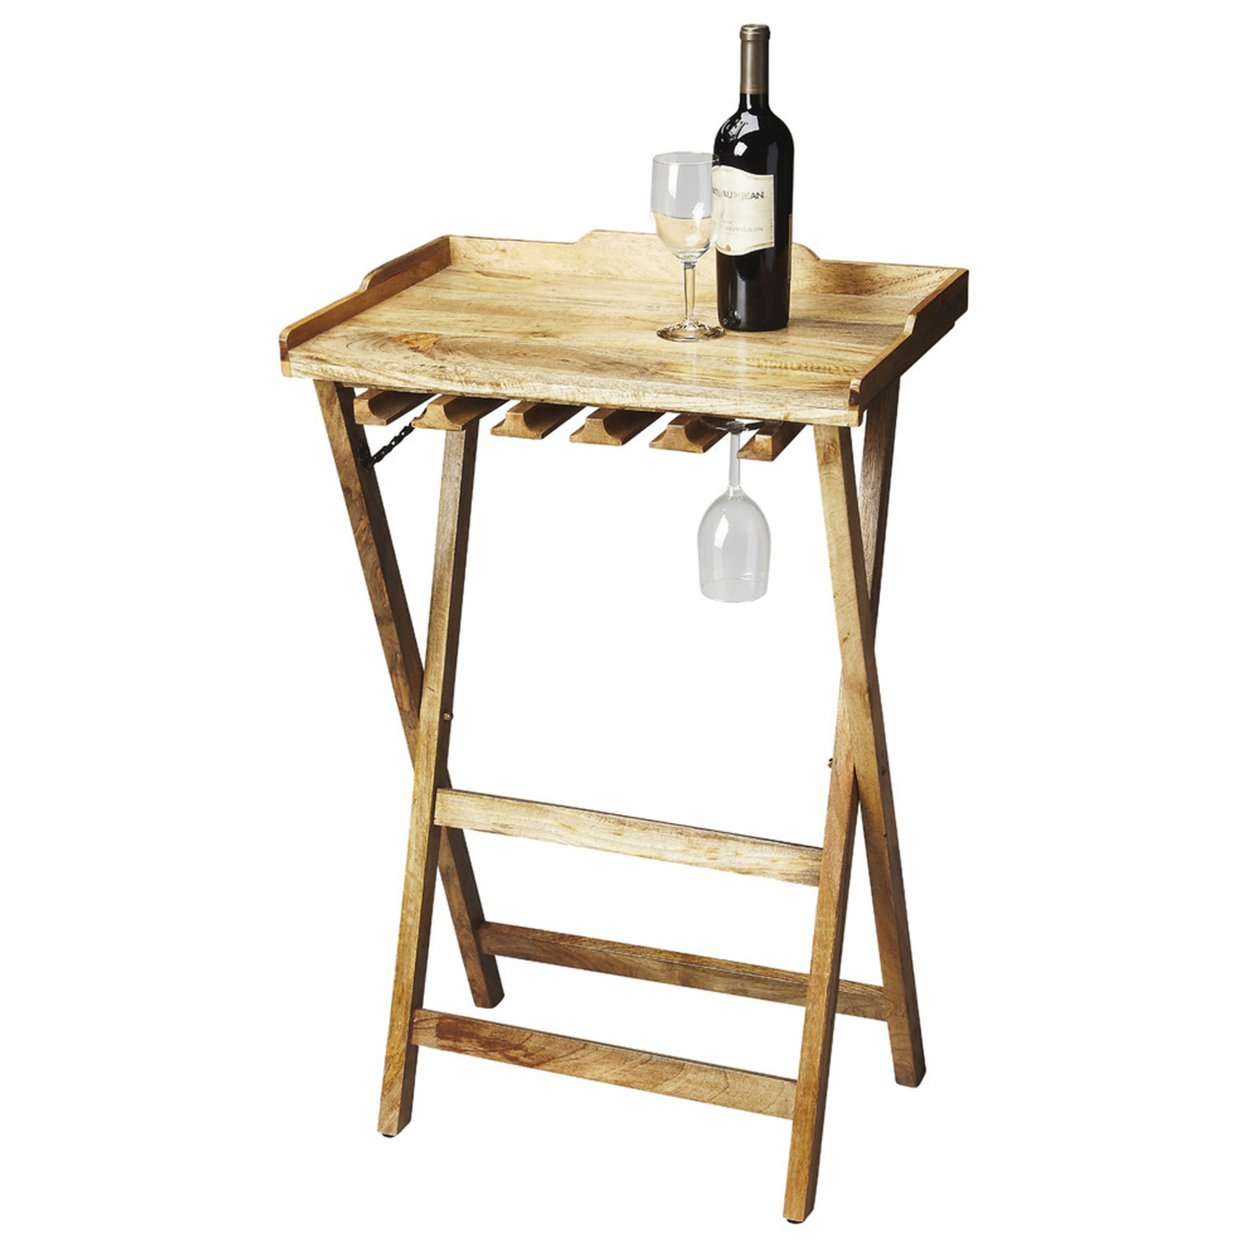 Butler Highland Solid Wood Folding Wine Rack 58b602302a00e466162a7c79